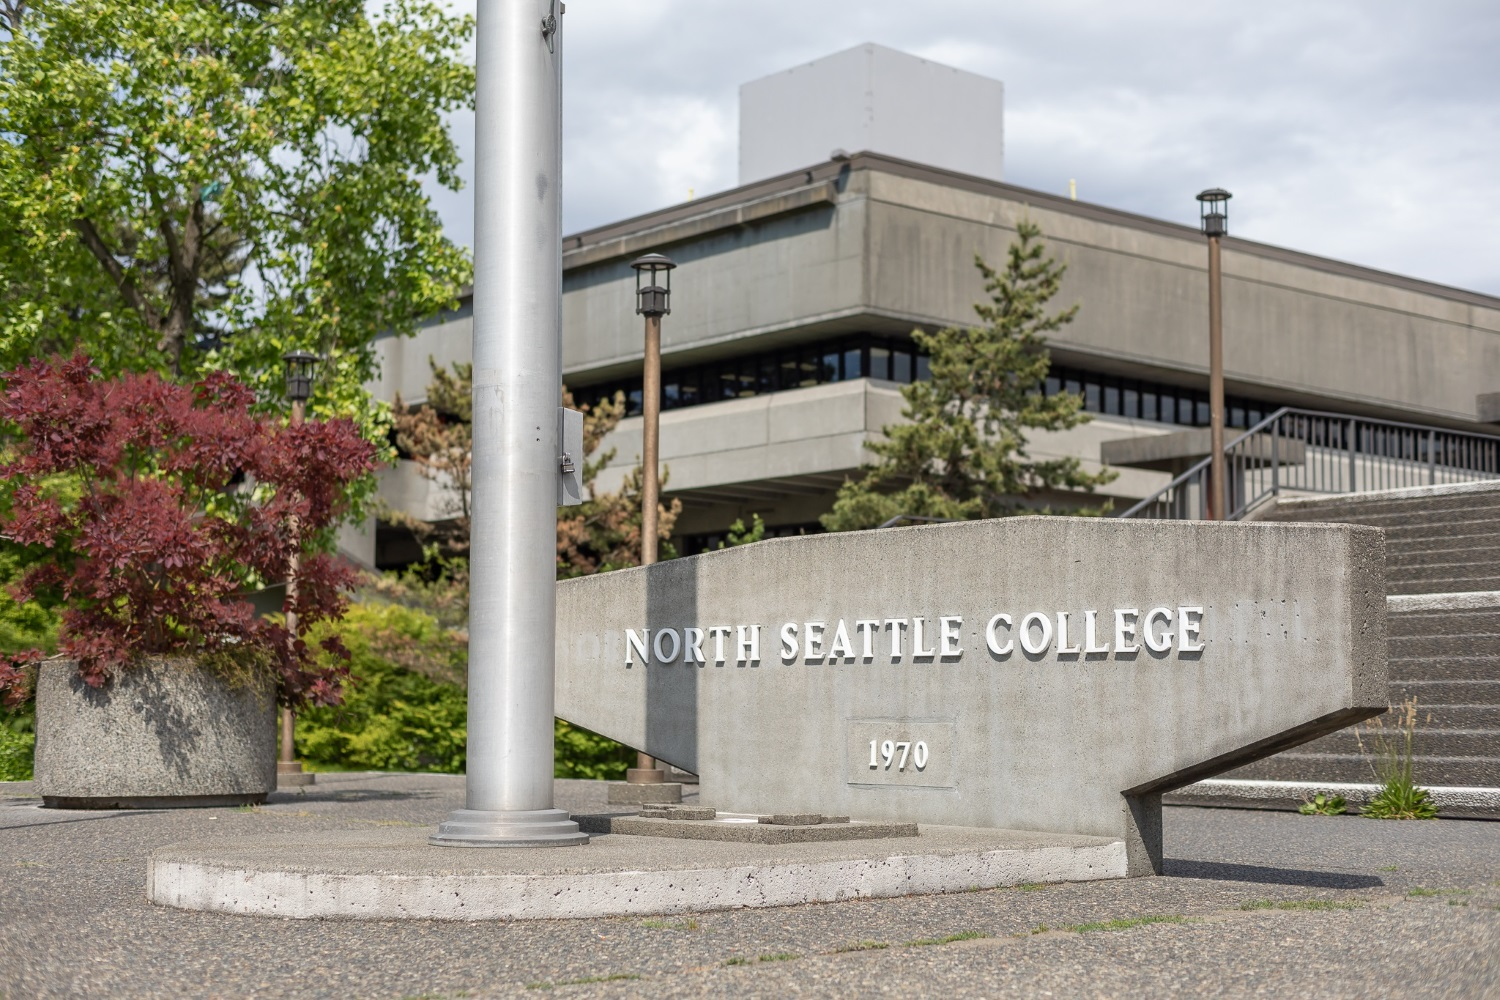 North Seattle College sign